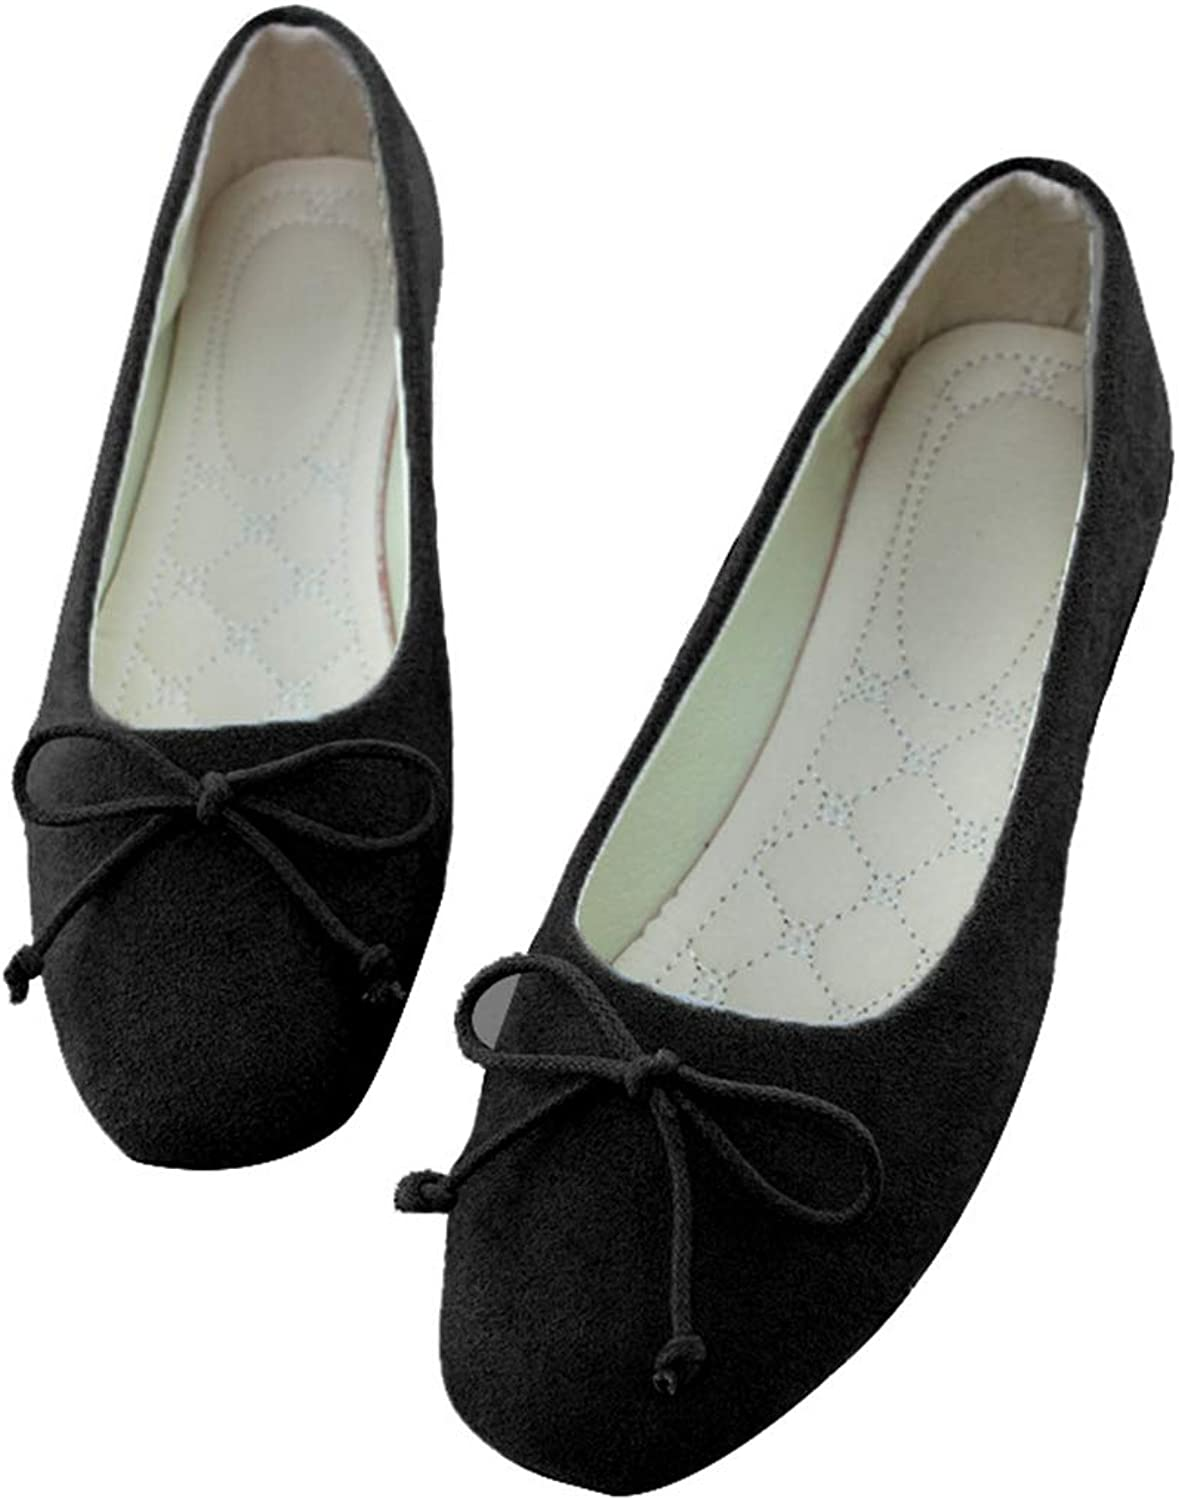 Kyle Walsh Pa Women Flats Square Toe Silp on Flat shoes Bow Ballet Flats Female shoes Ladies shoes